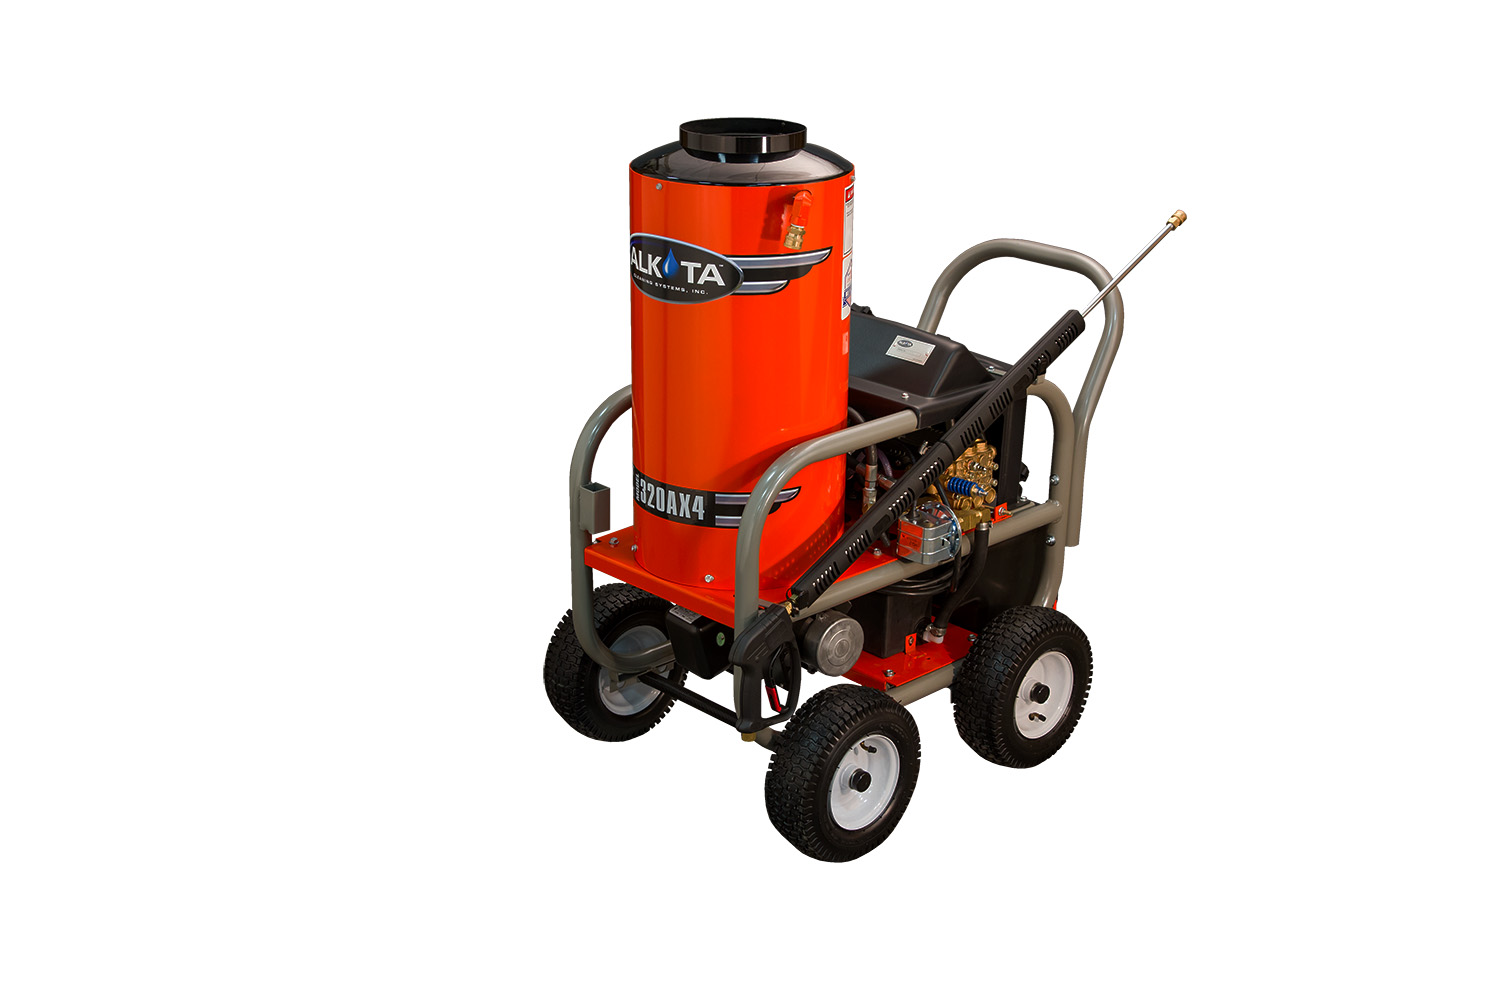 small resolution of pressure washer hot water 320ax4 alkota alkota cleaning systemspressure washer hot water 320ax4 alkota agriculture pressure